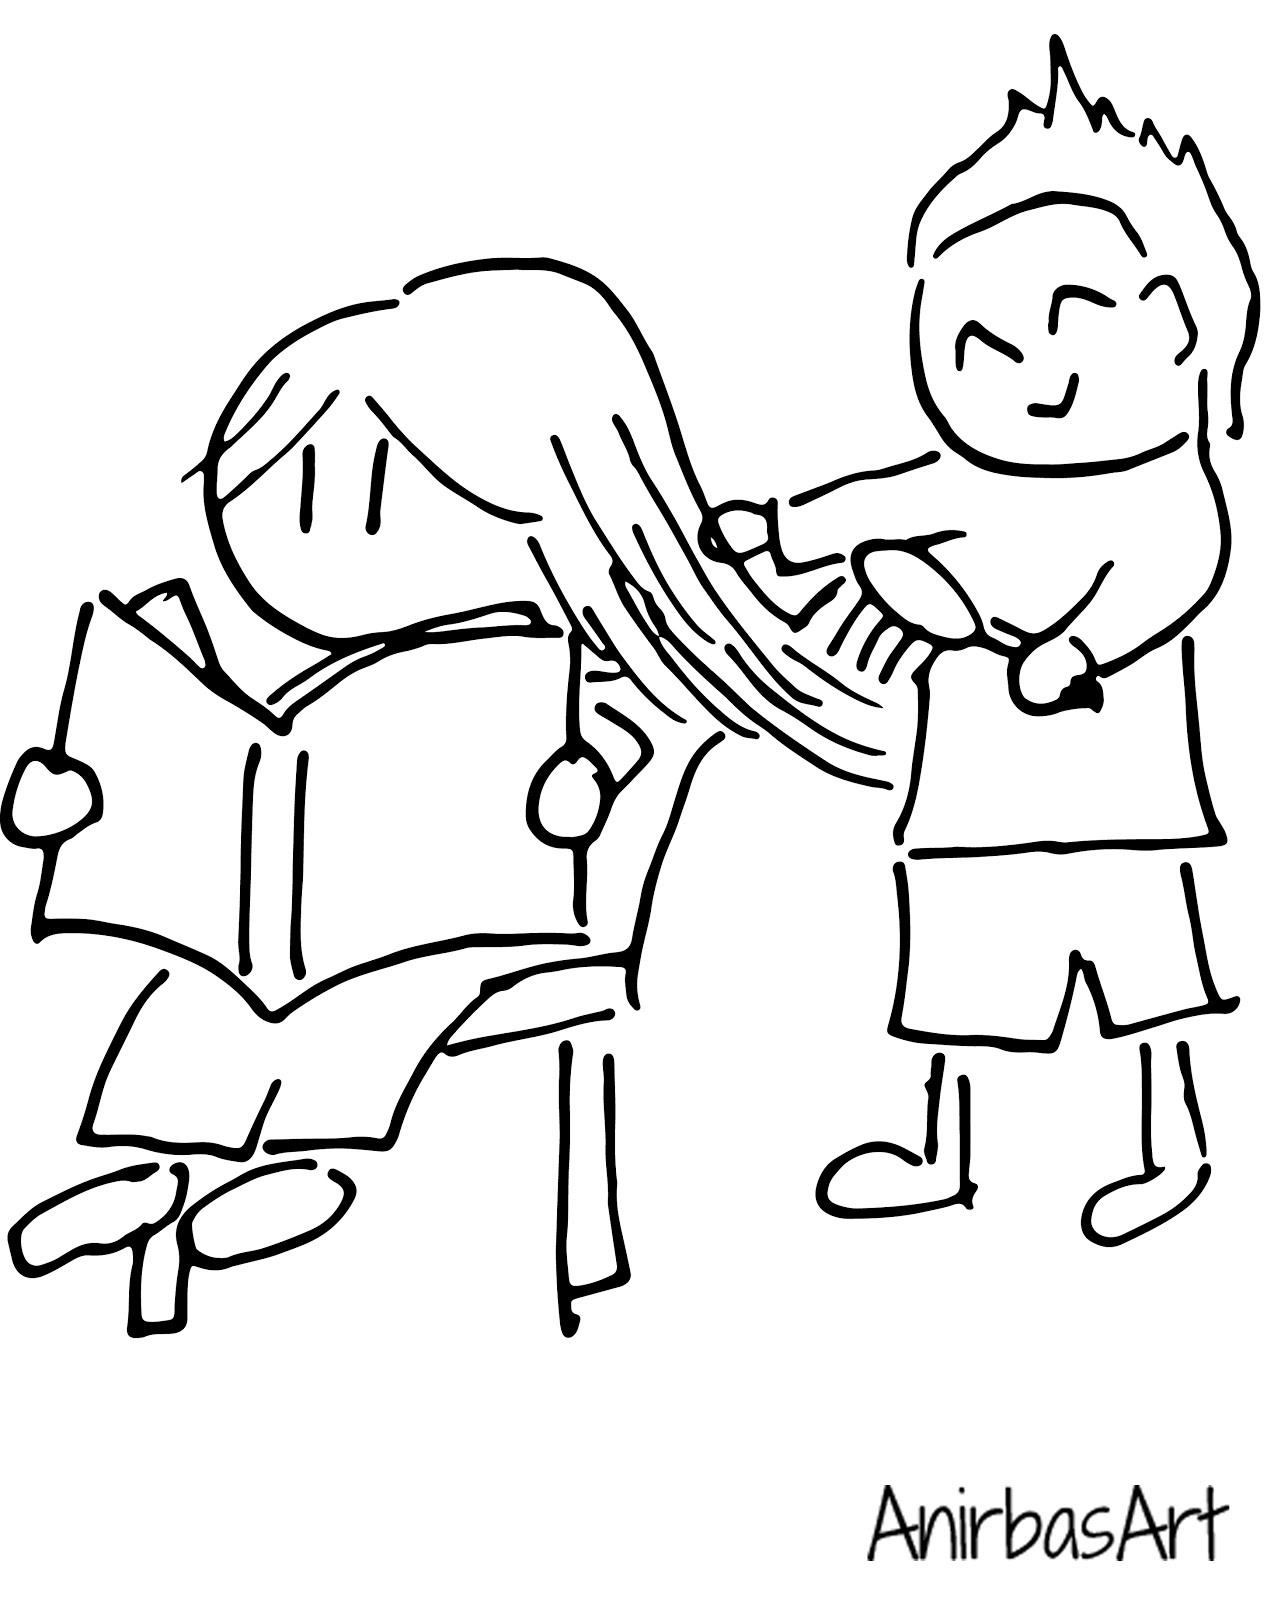 brushing hair coloring pages - photo#6